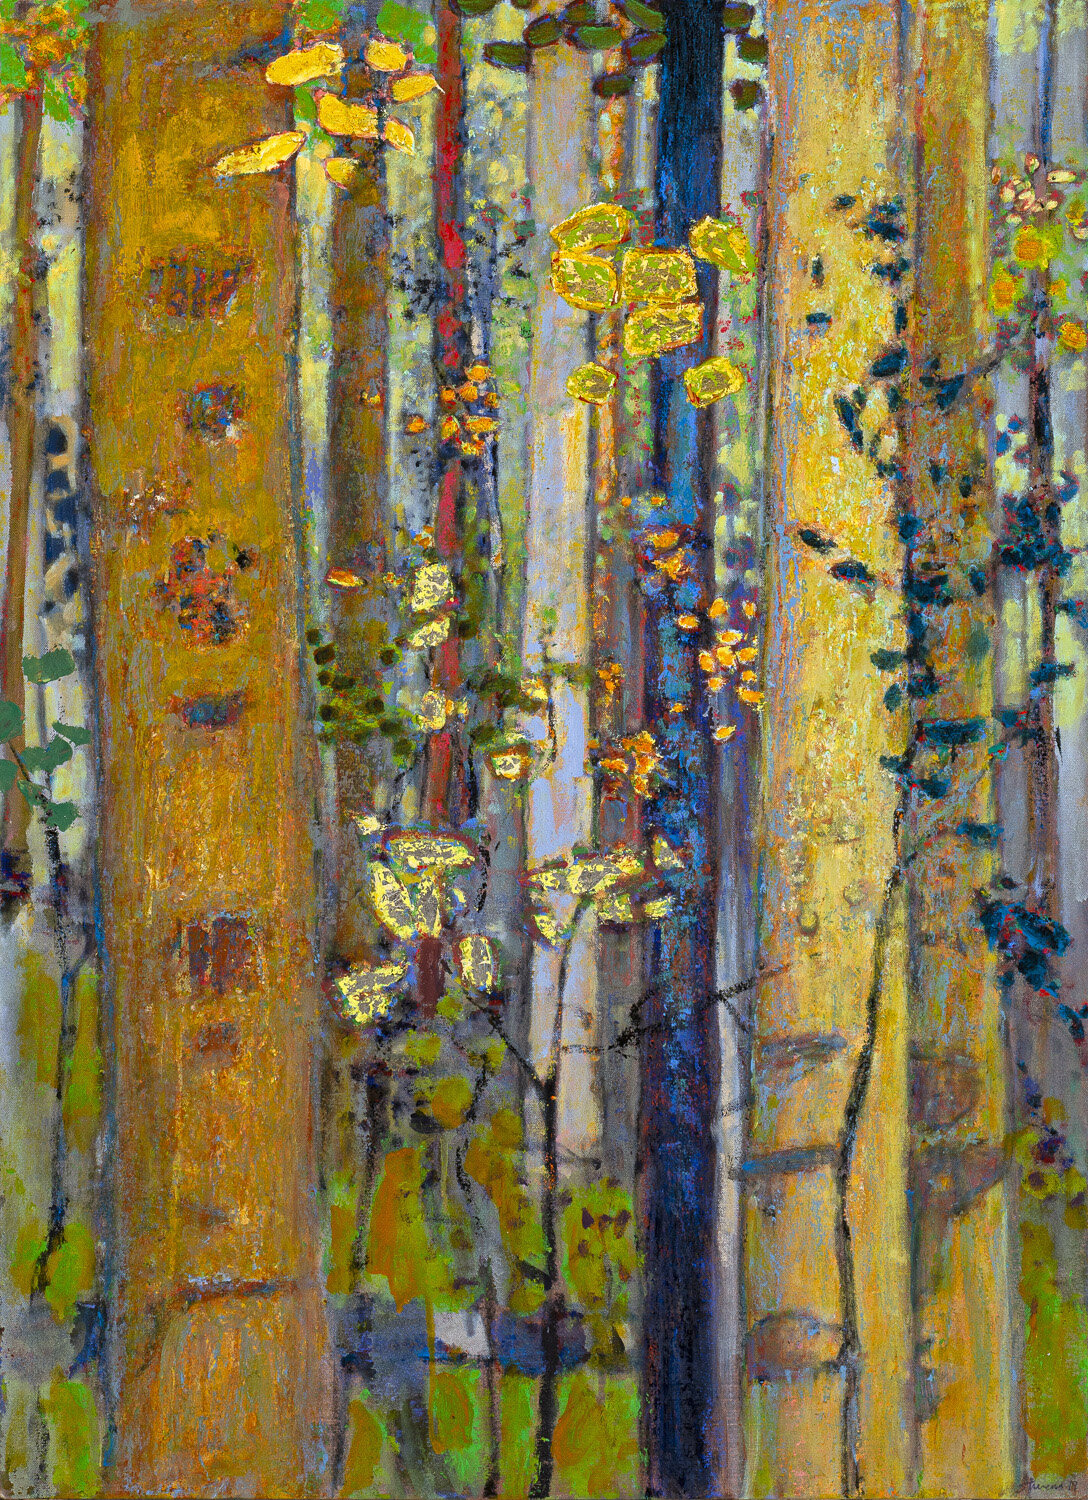 Patterns of the Forest  | oil on canvas | 44 x 32"